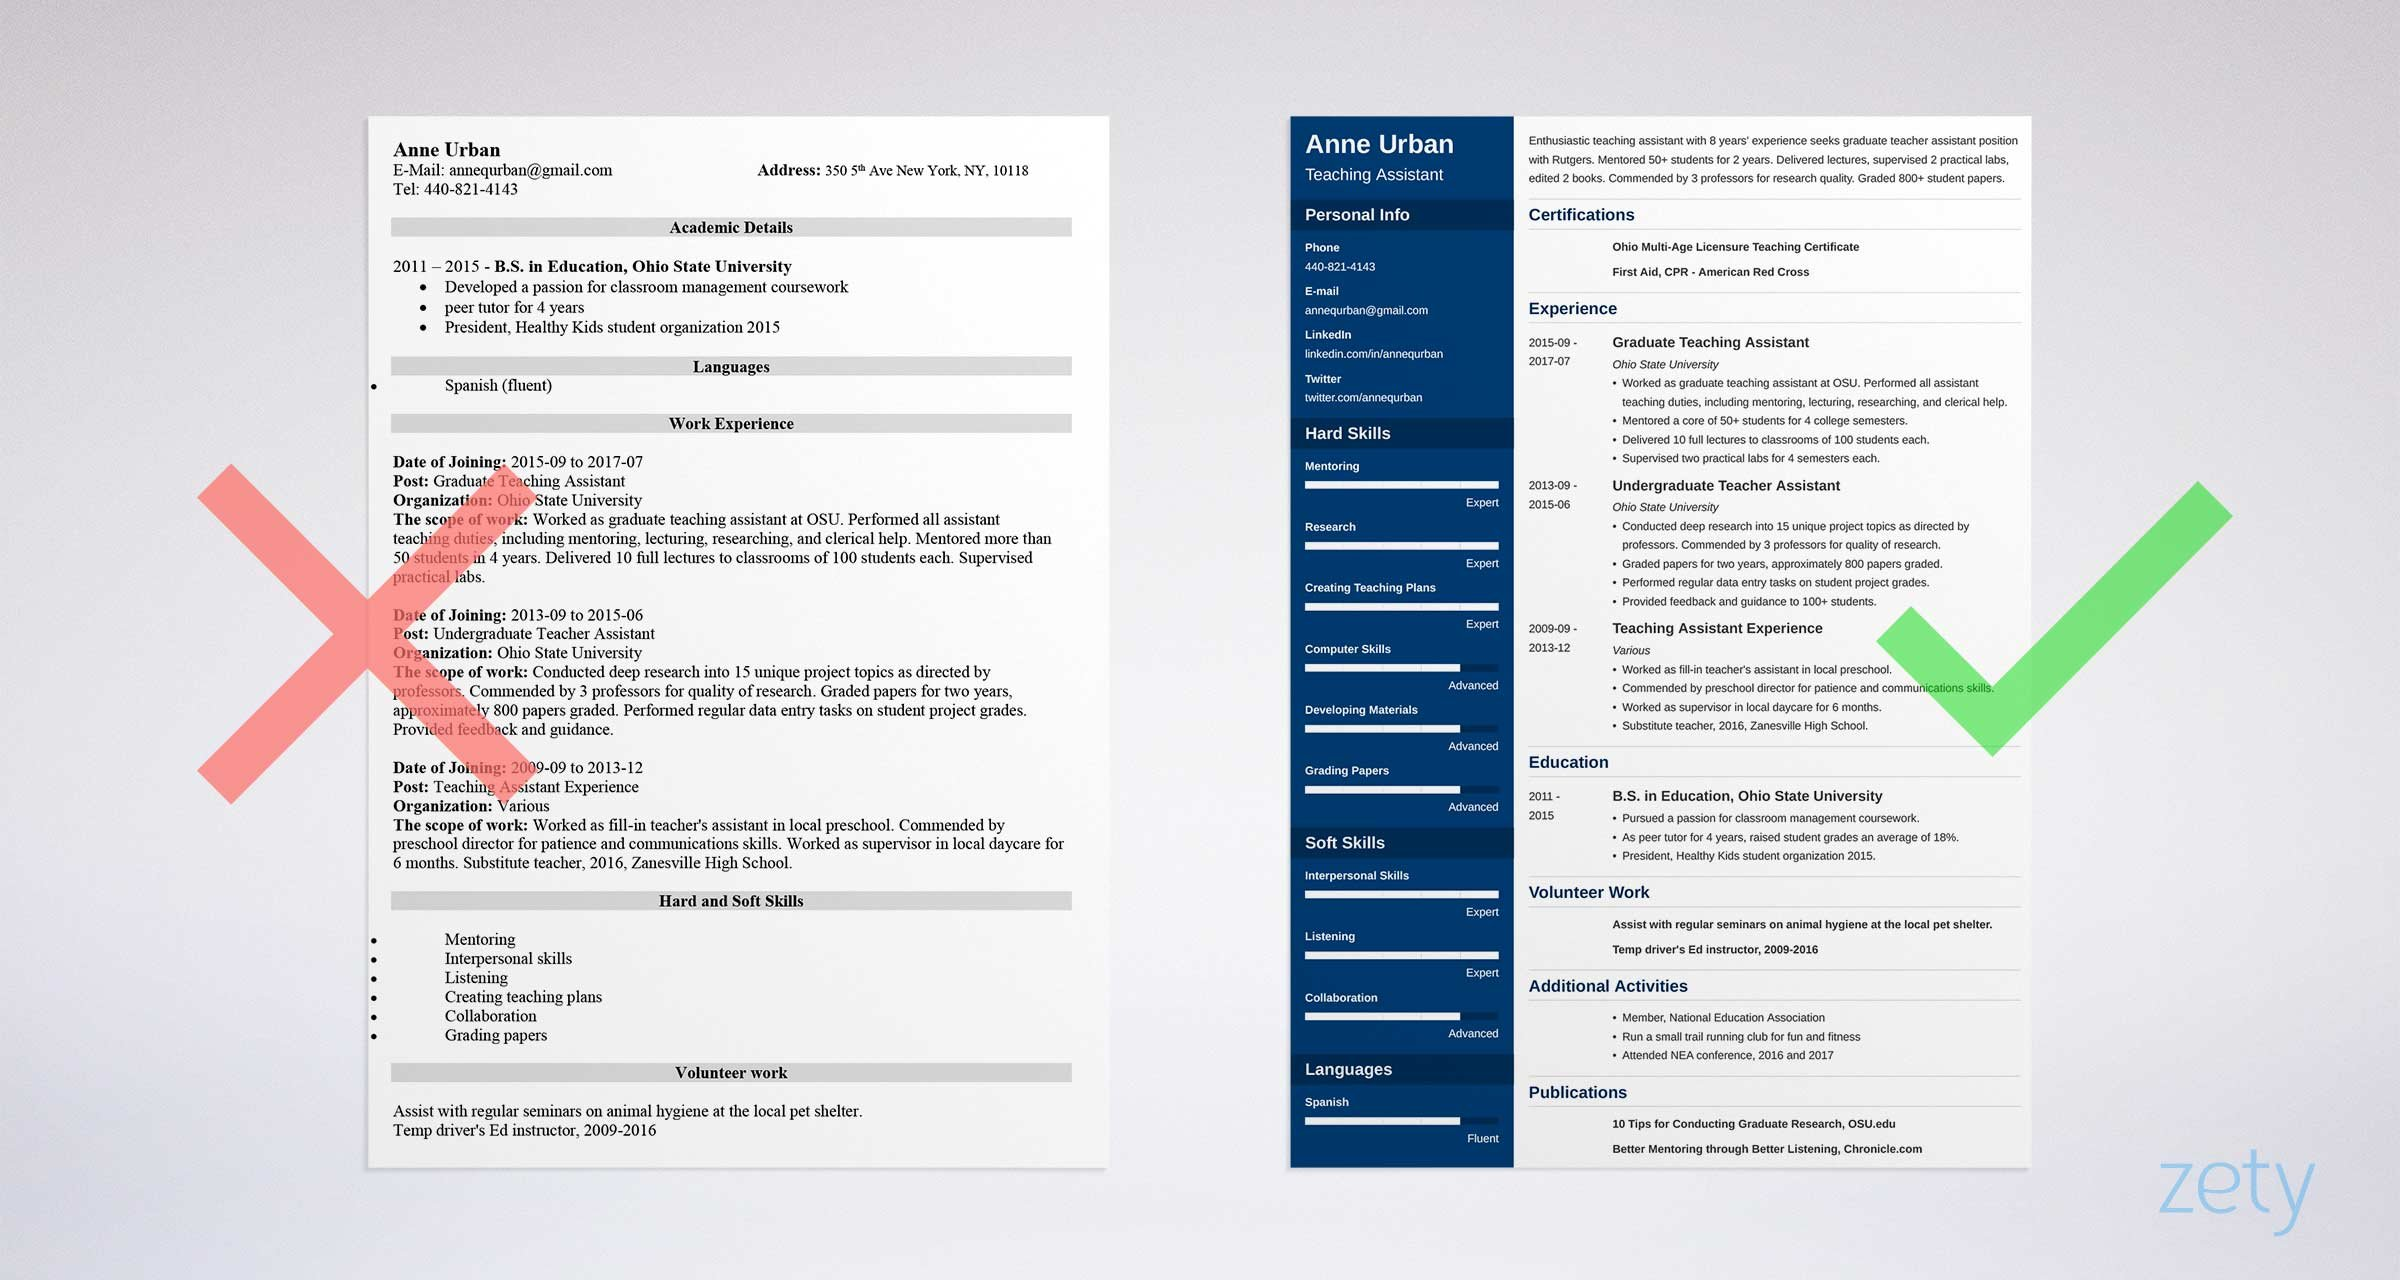 Teaching Assistant Resume: Sample and Complete Guide [+20 Examples]